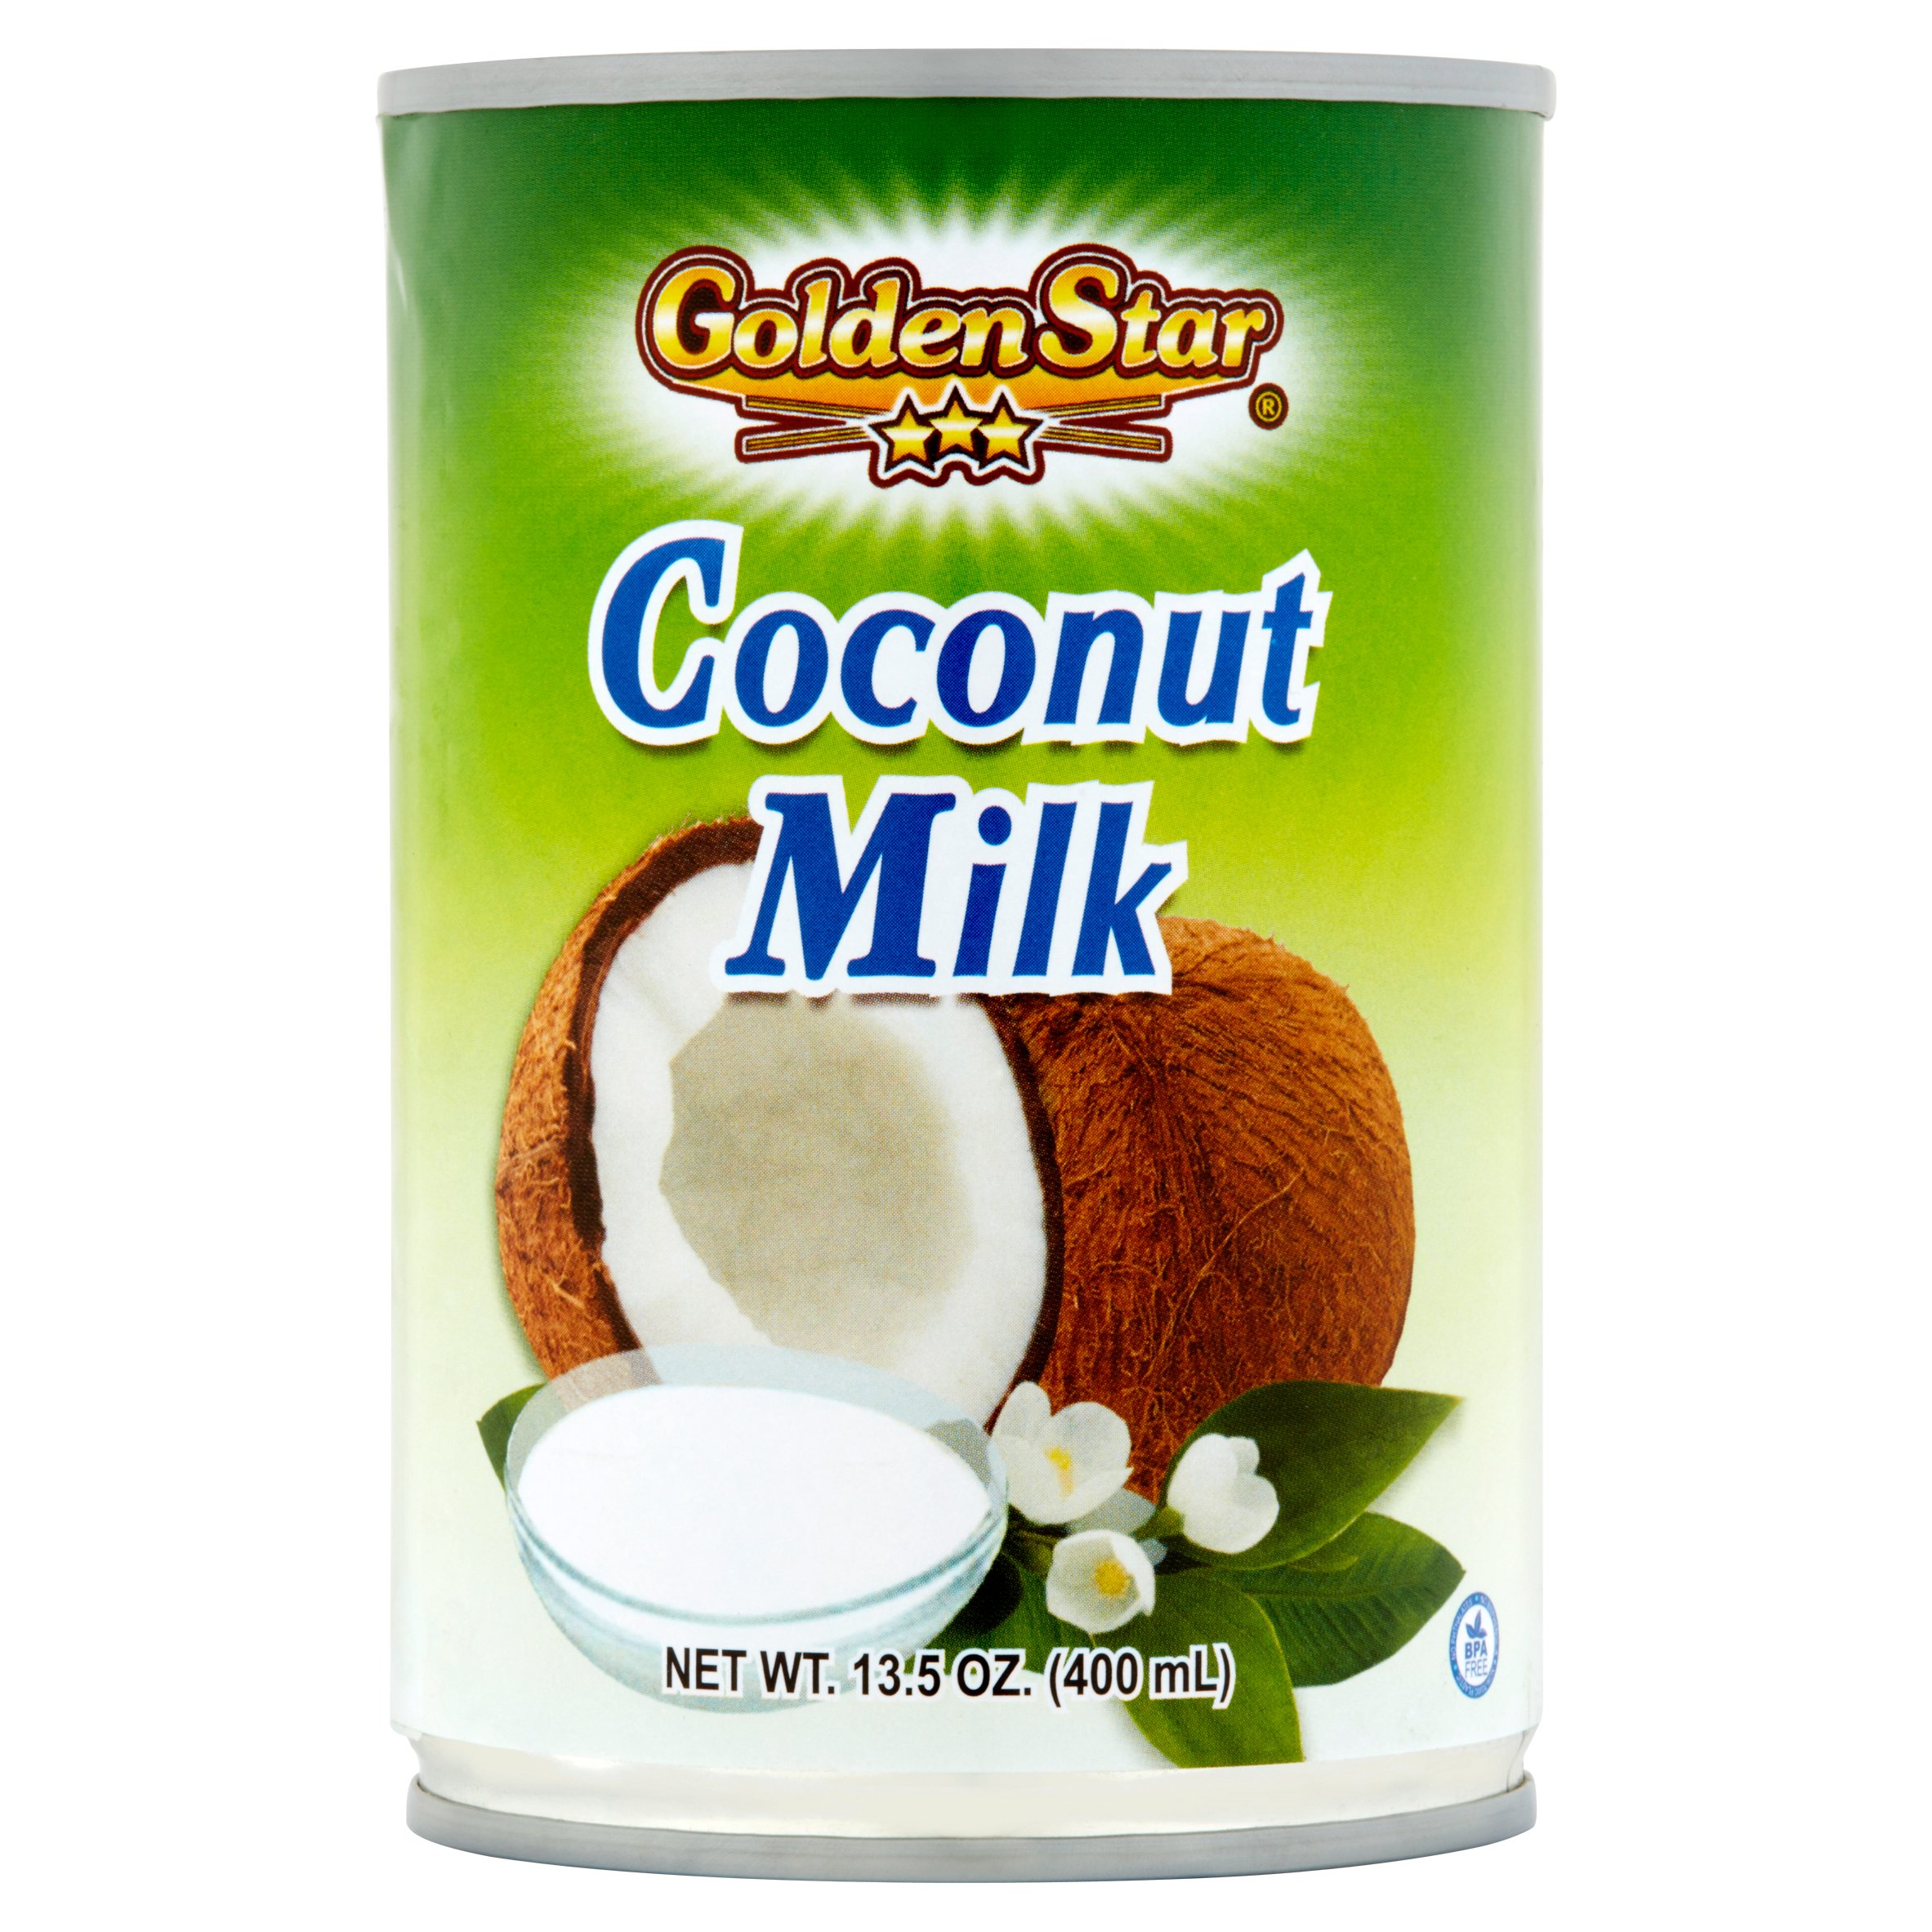 Golden Star Coconut Milk, 13.5 oz by Golden Star Trading, Inc.